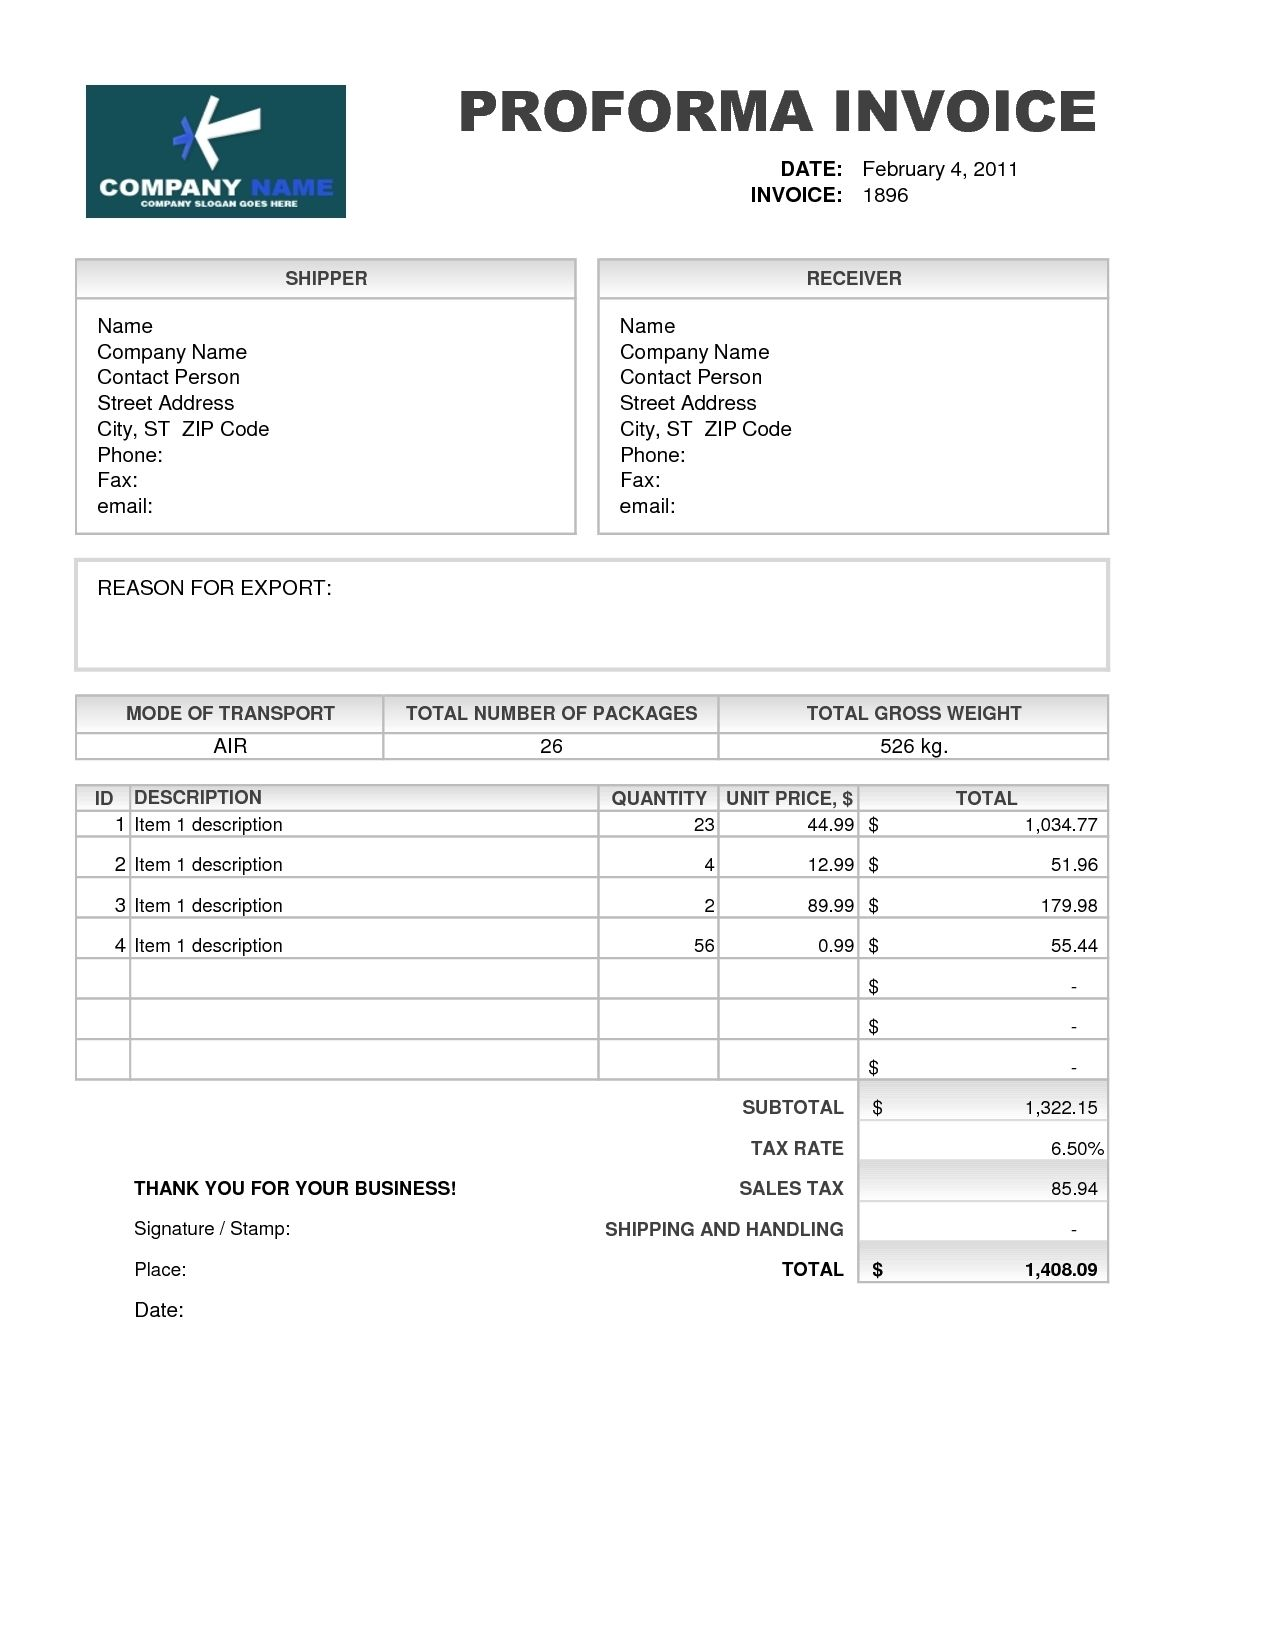 samples of proforma invoice invoice template free 2016 meaning